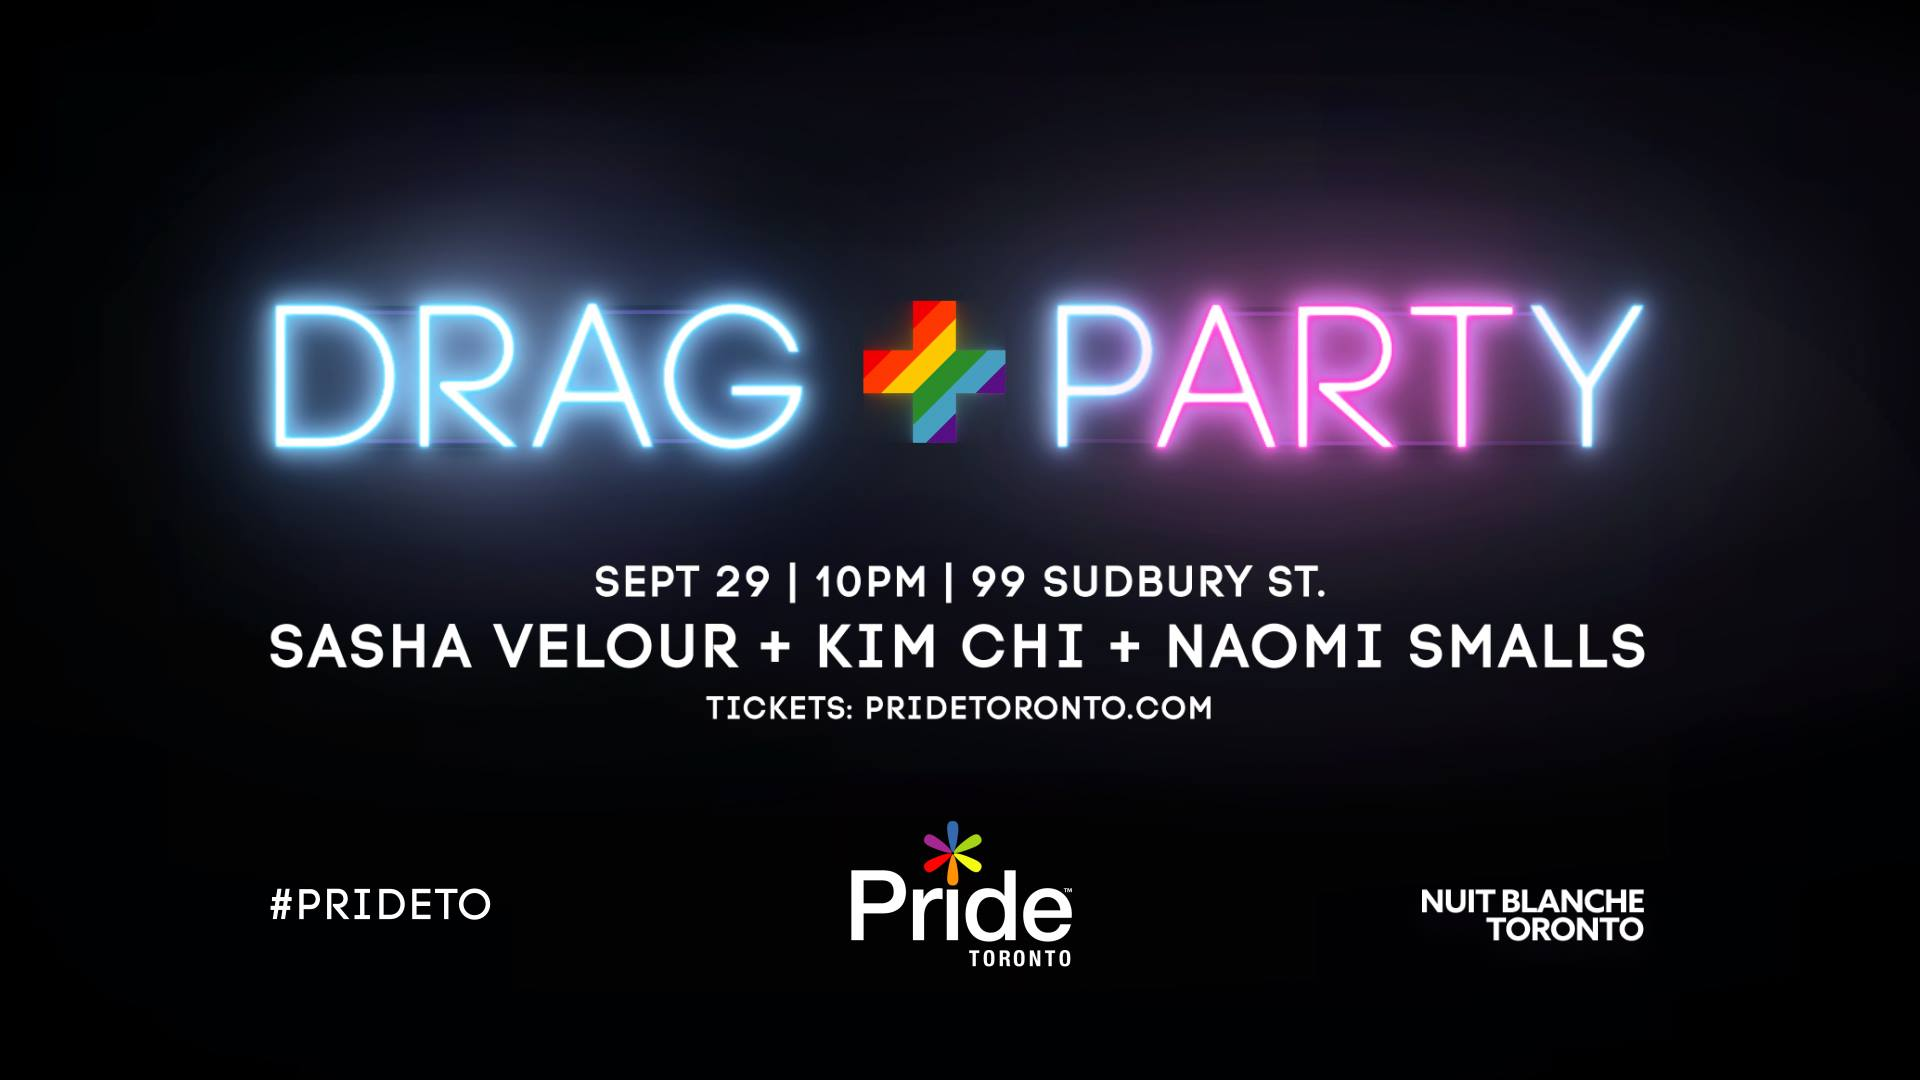 nuit-blanche-drag-party-toronto